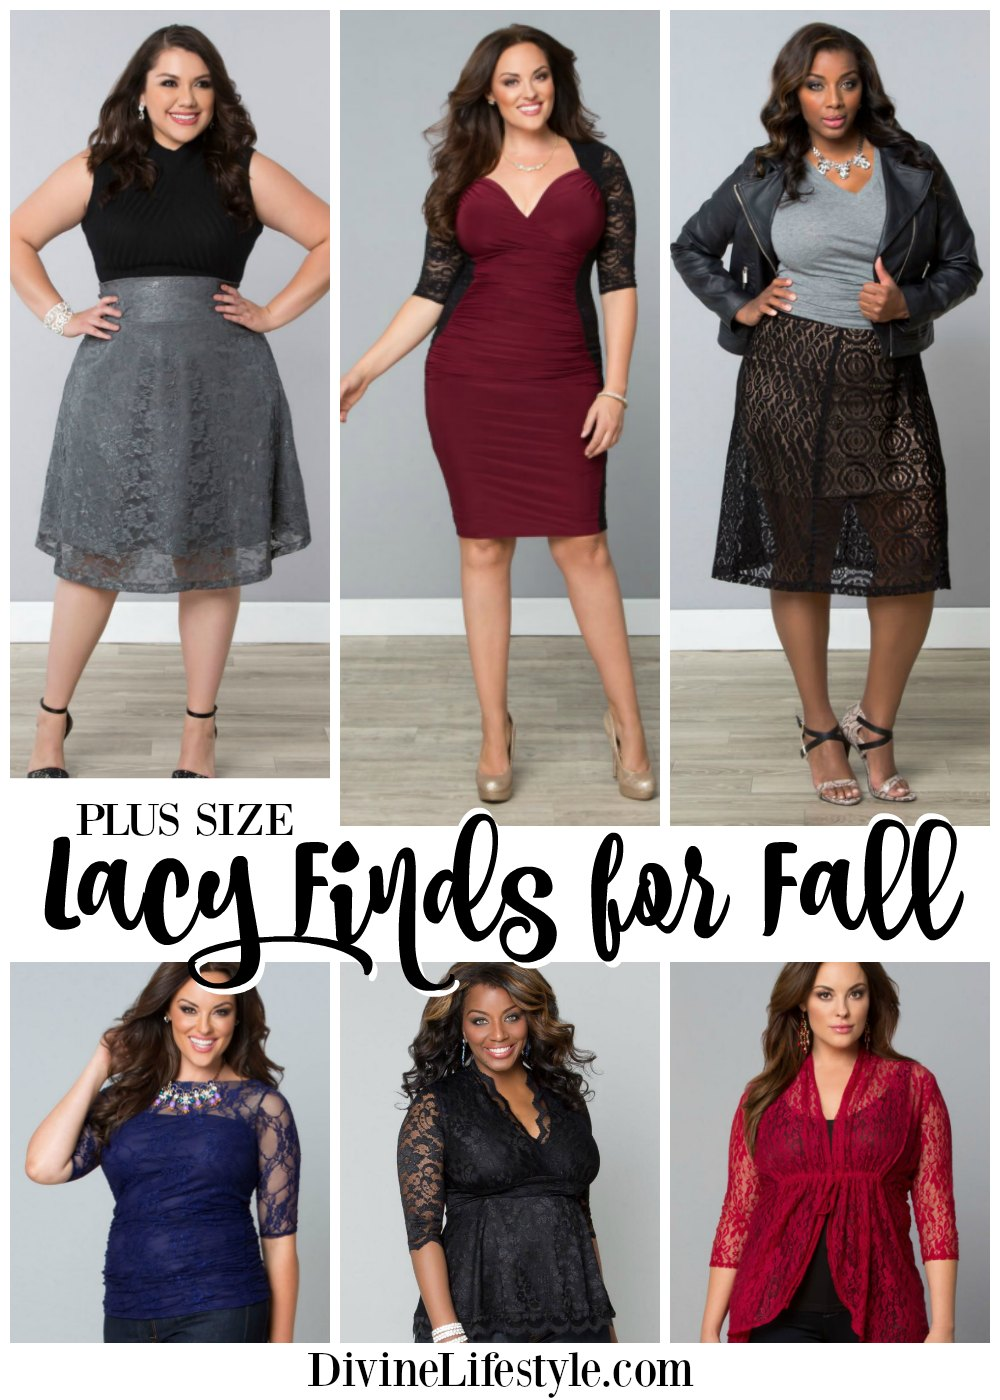 Plus Size Lacy Finds for Fall